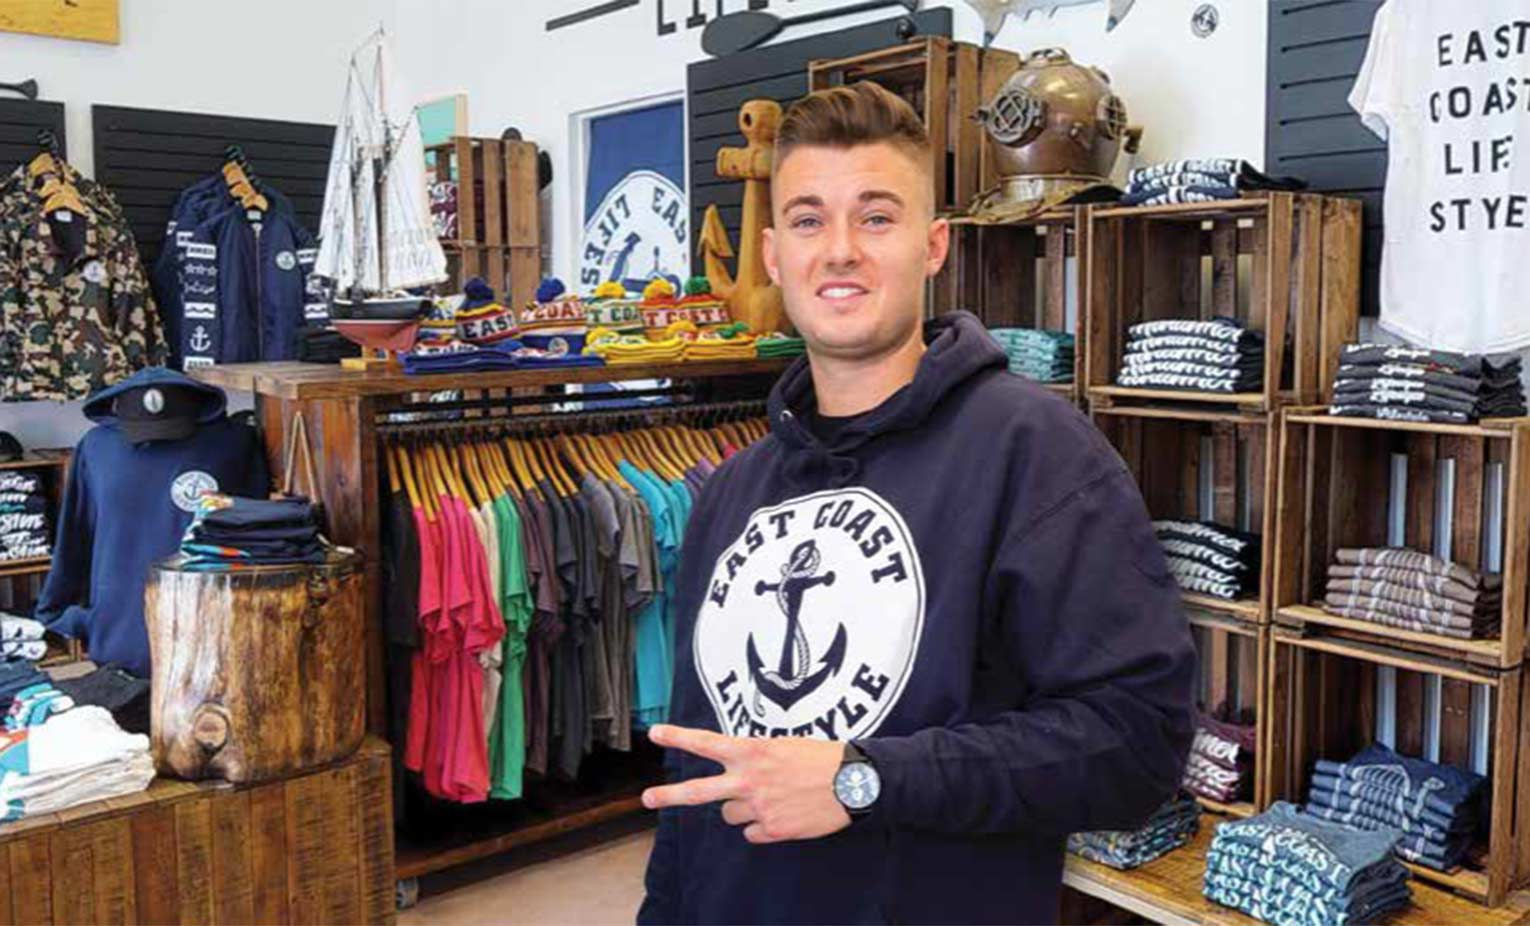 Alex MacLean, founder of East Coast Lifestyle, wearing an East Coast Lifestyle hoodie.